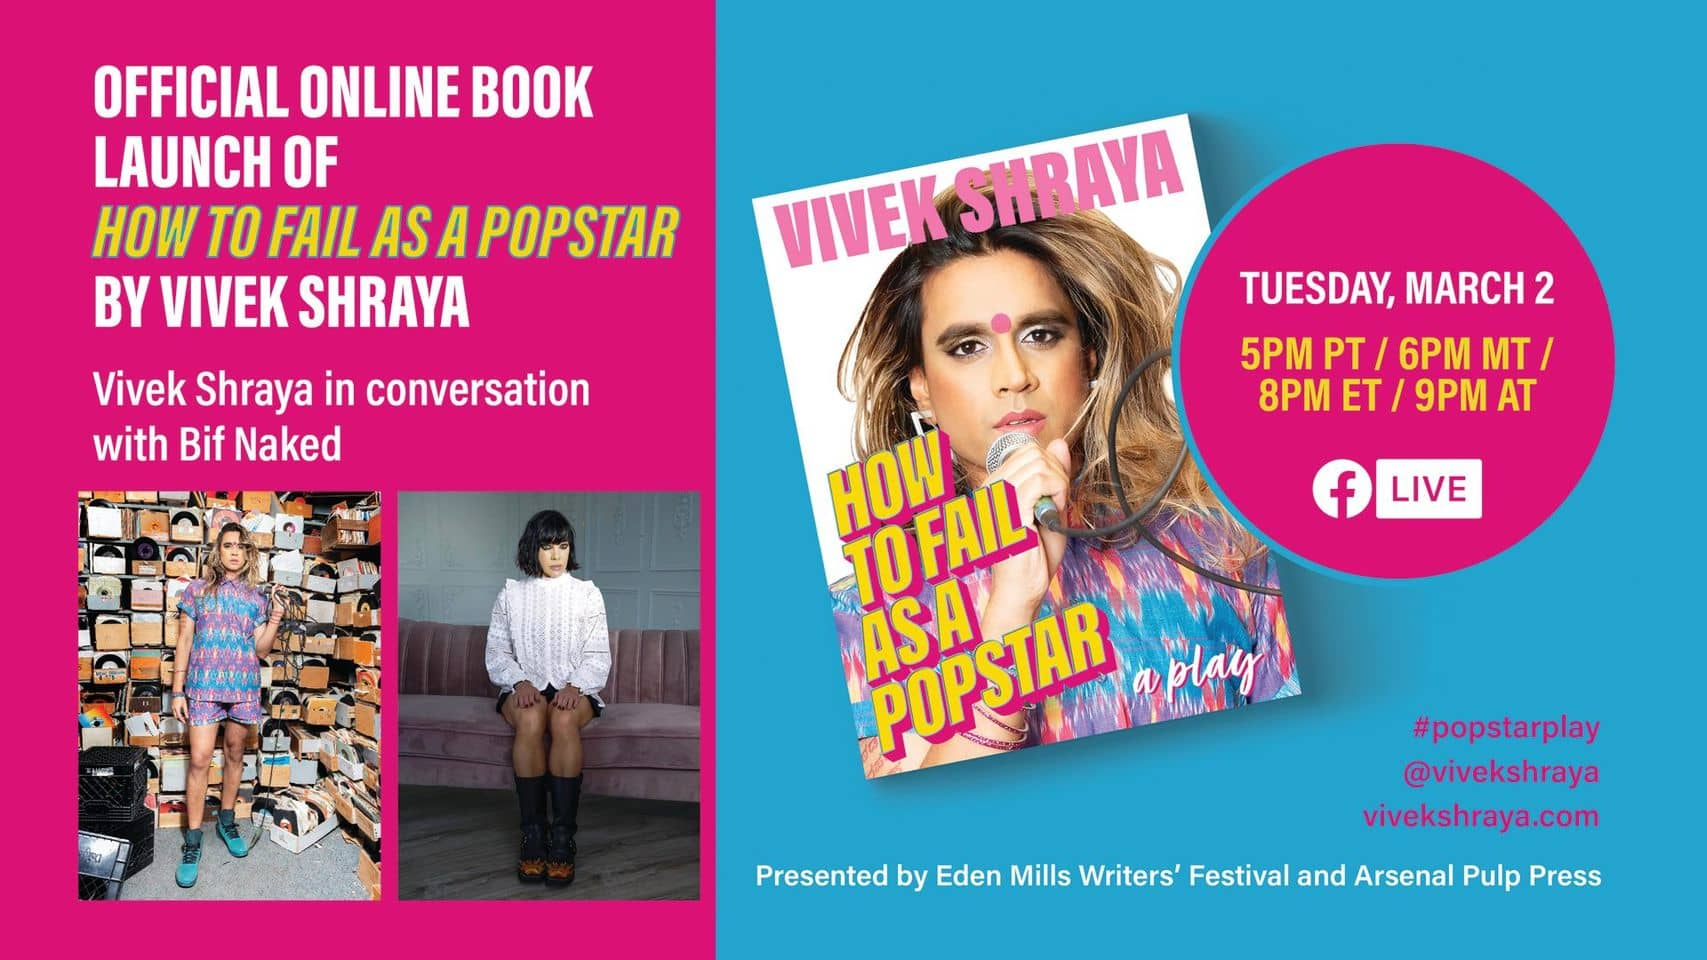 Poster for How To Fail as a Popstar